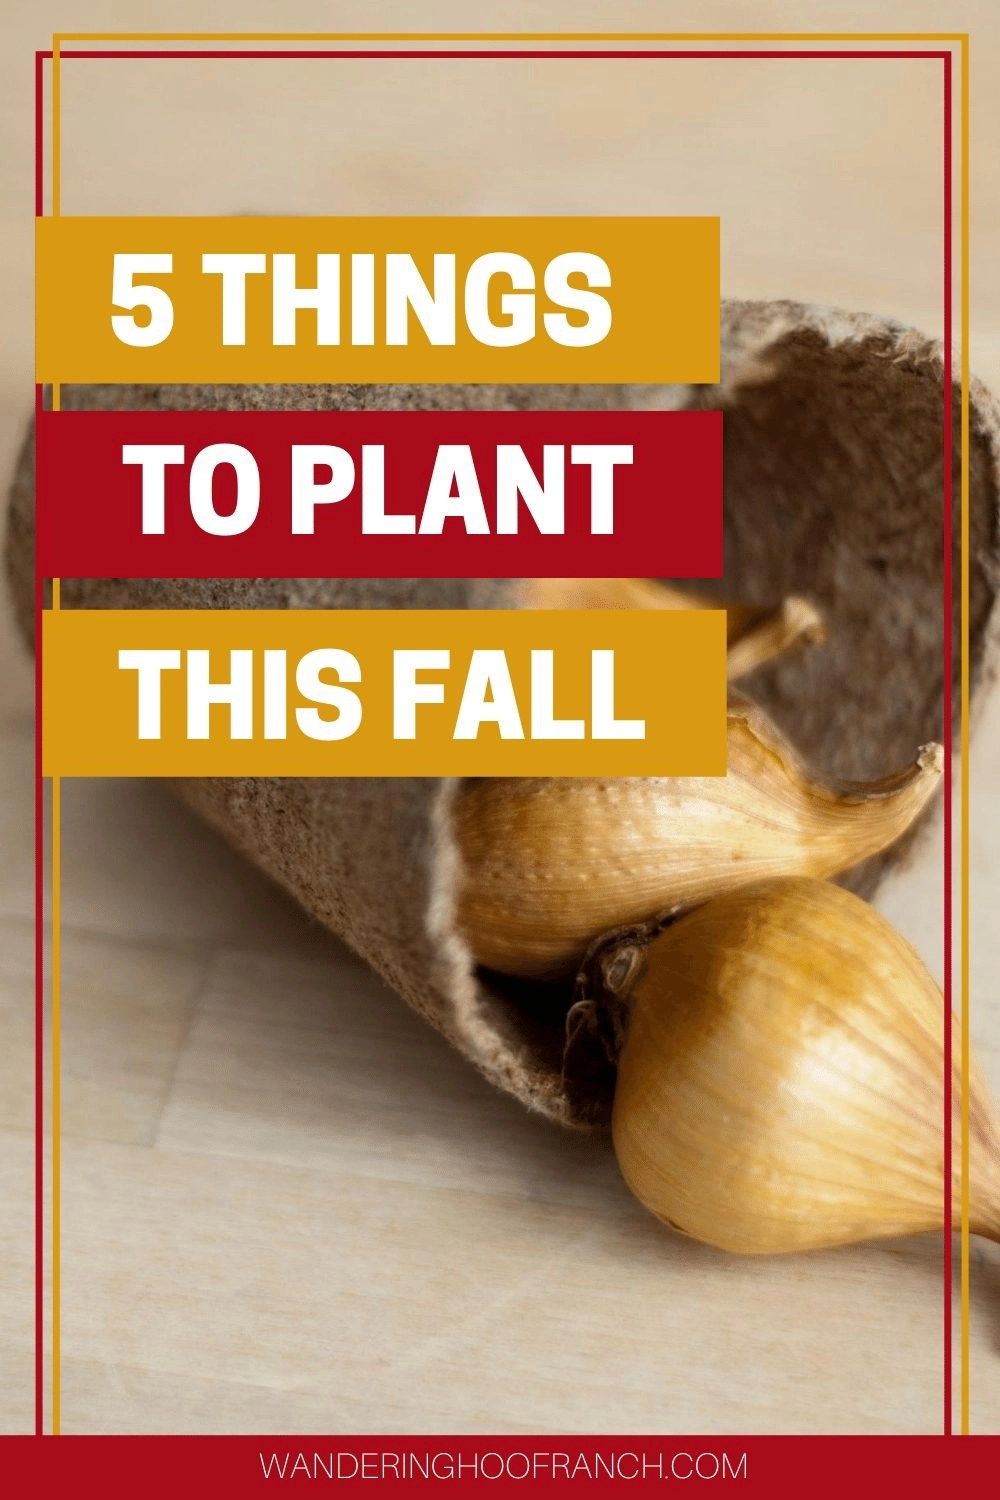 5 things to plant this fall image with bulbs in planter pot